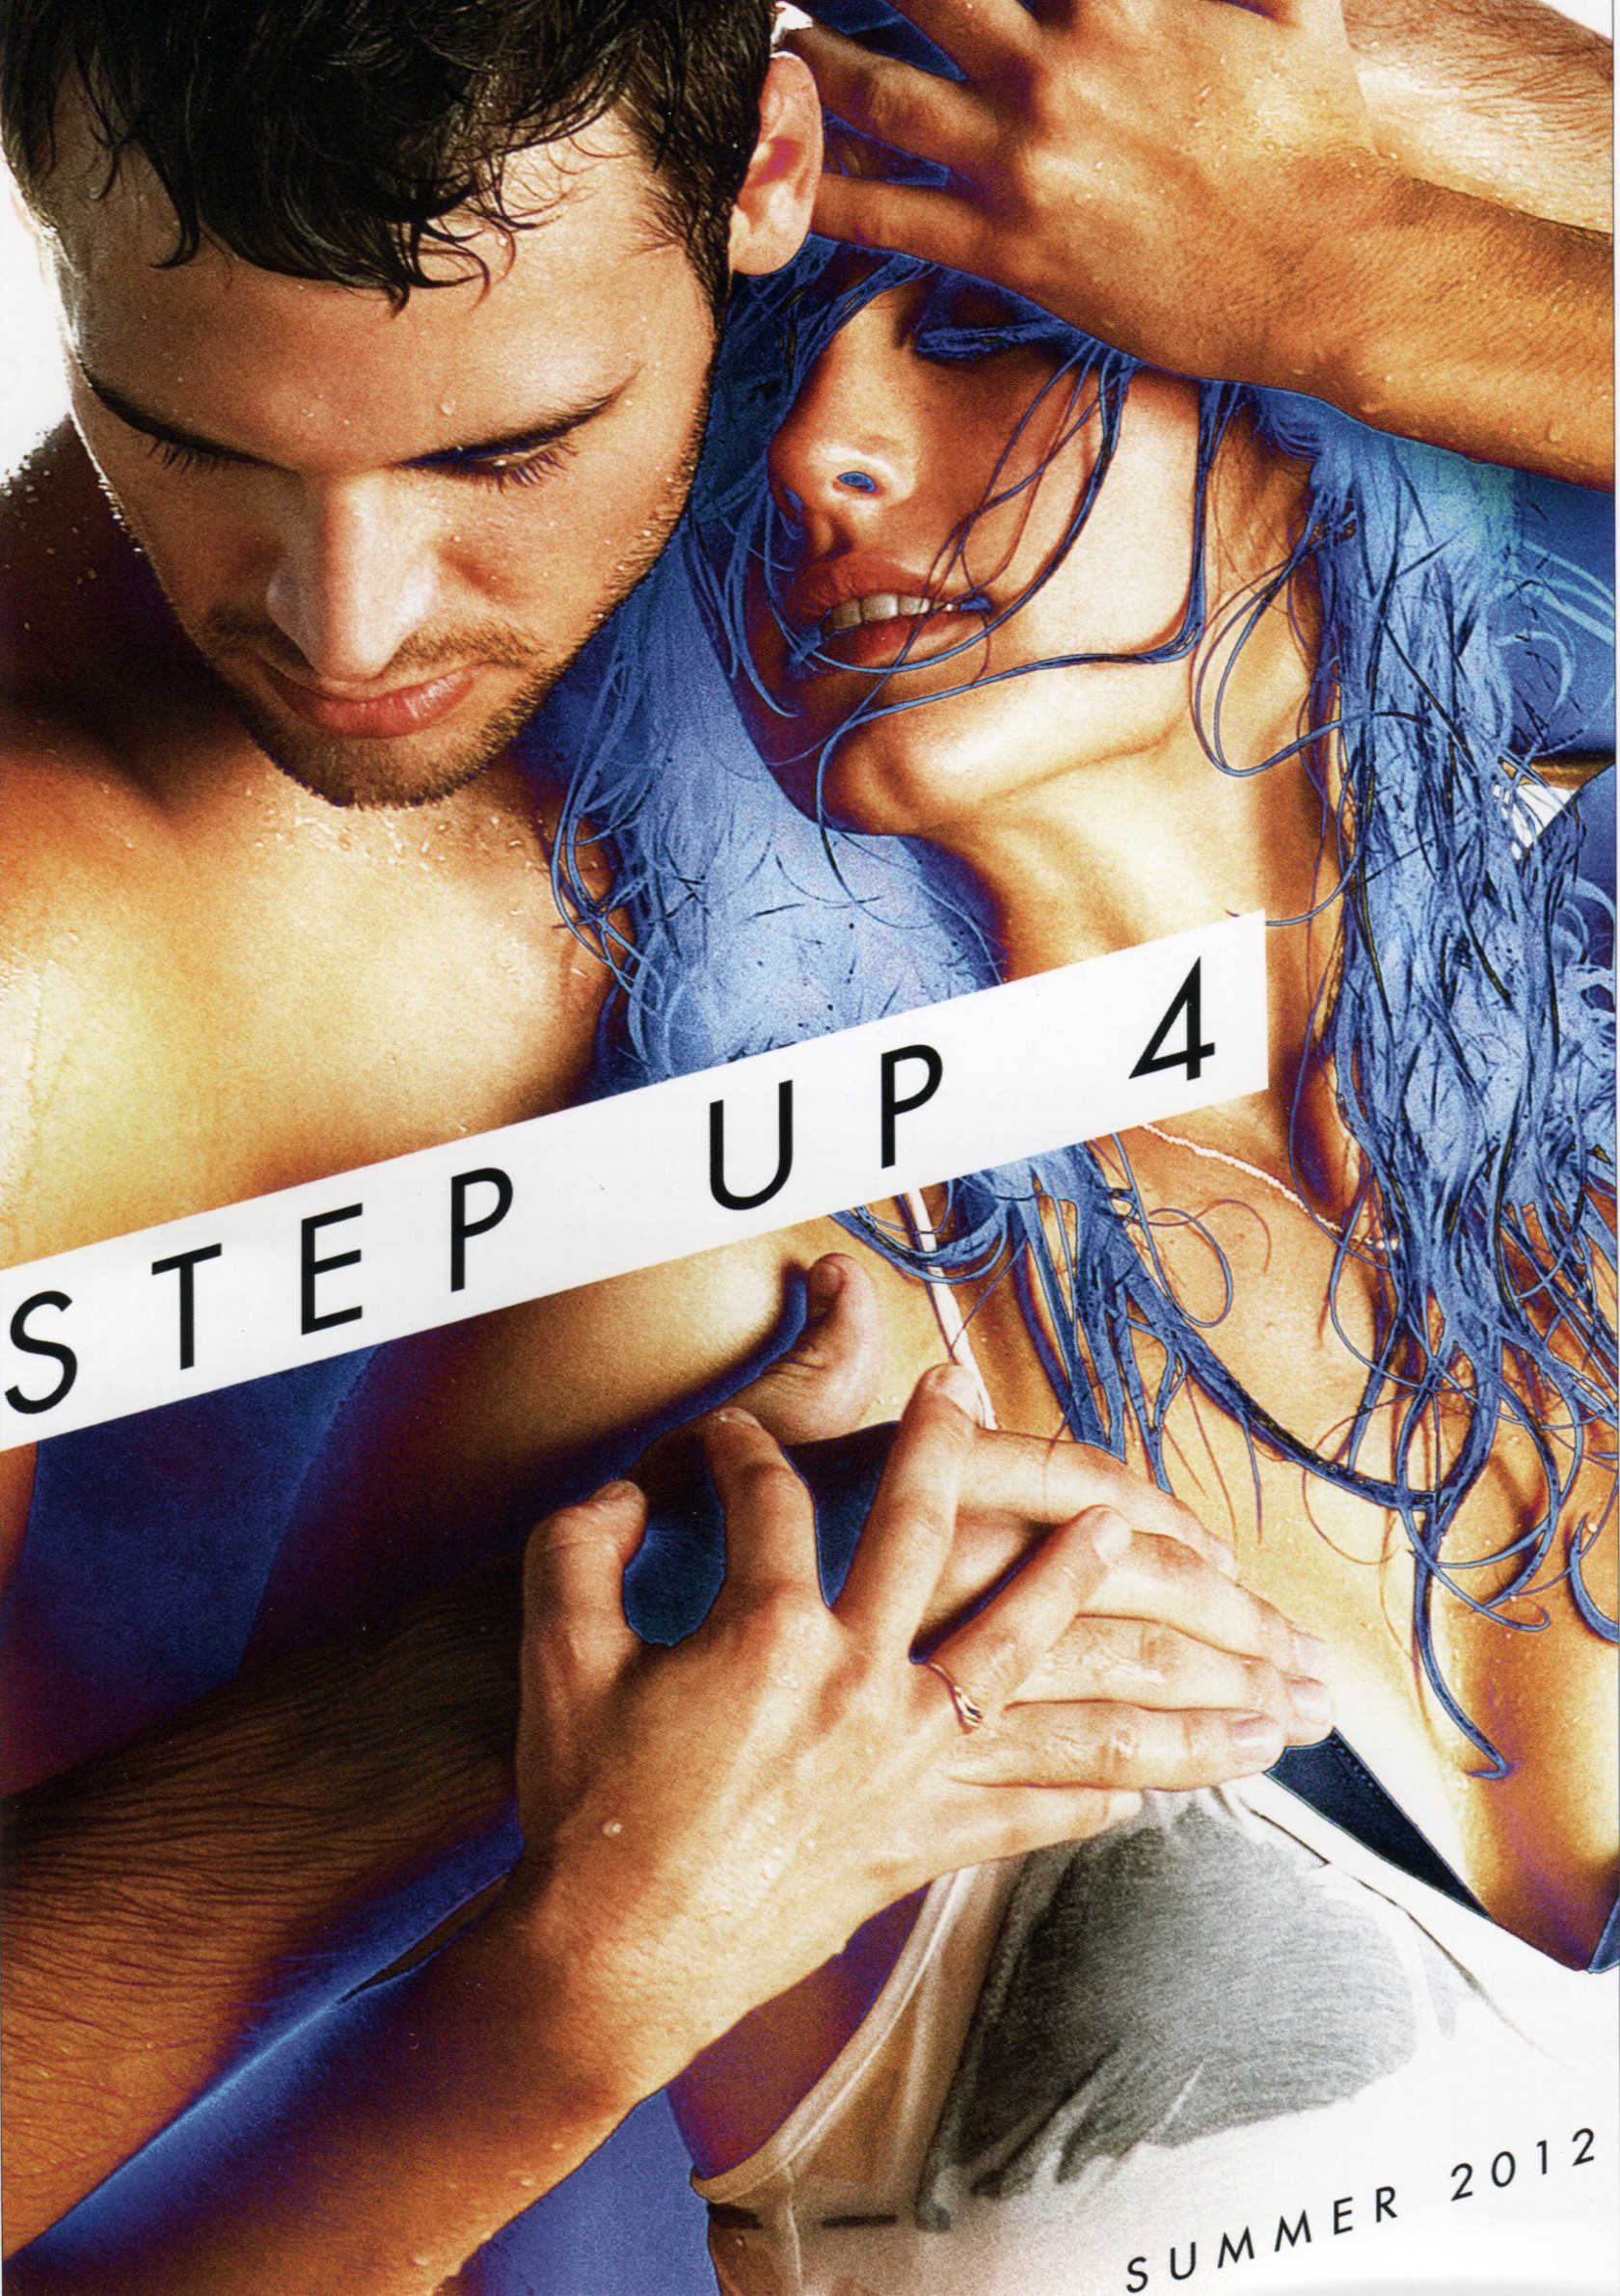 step up revolution full movie with subtitles